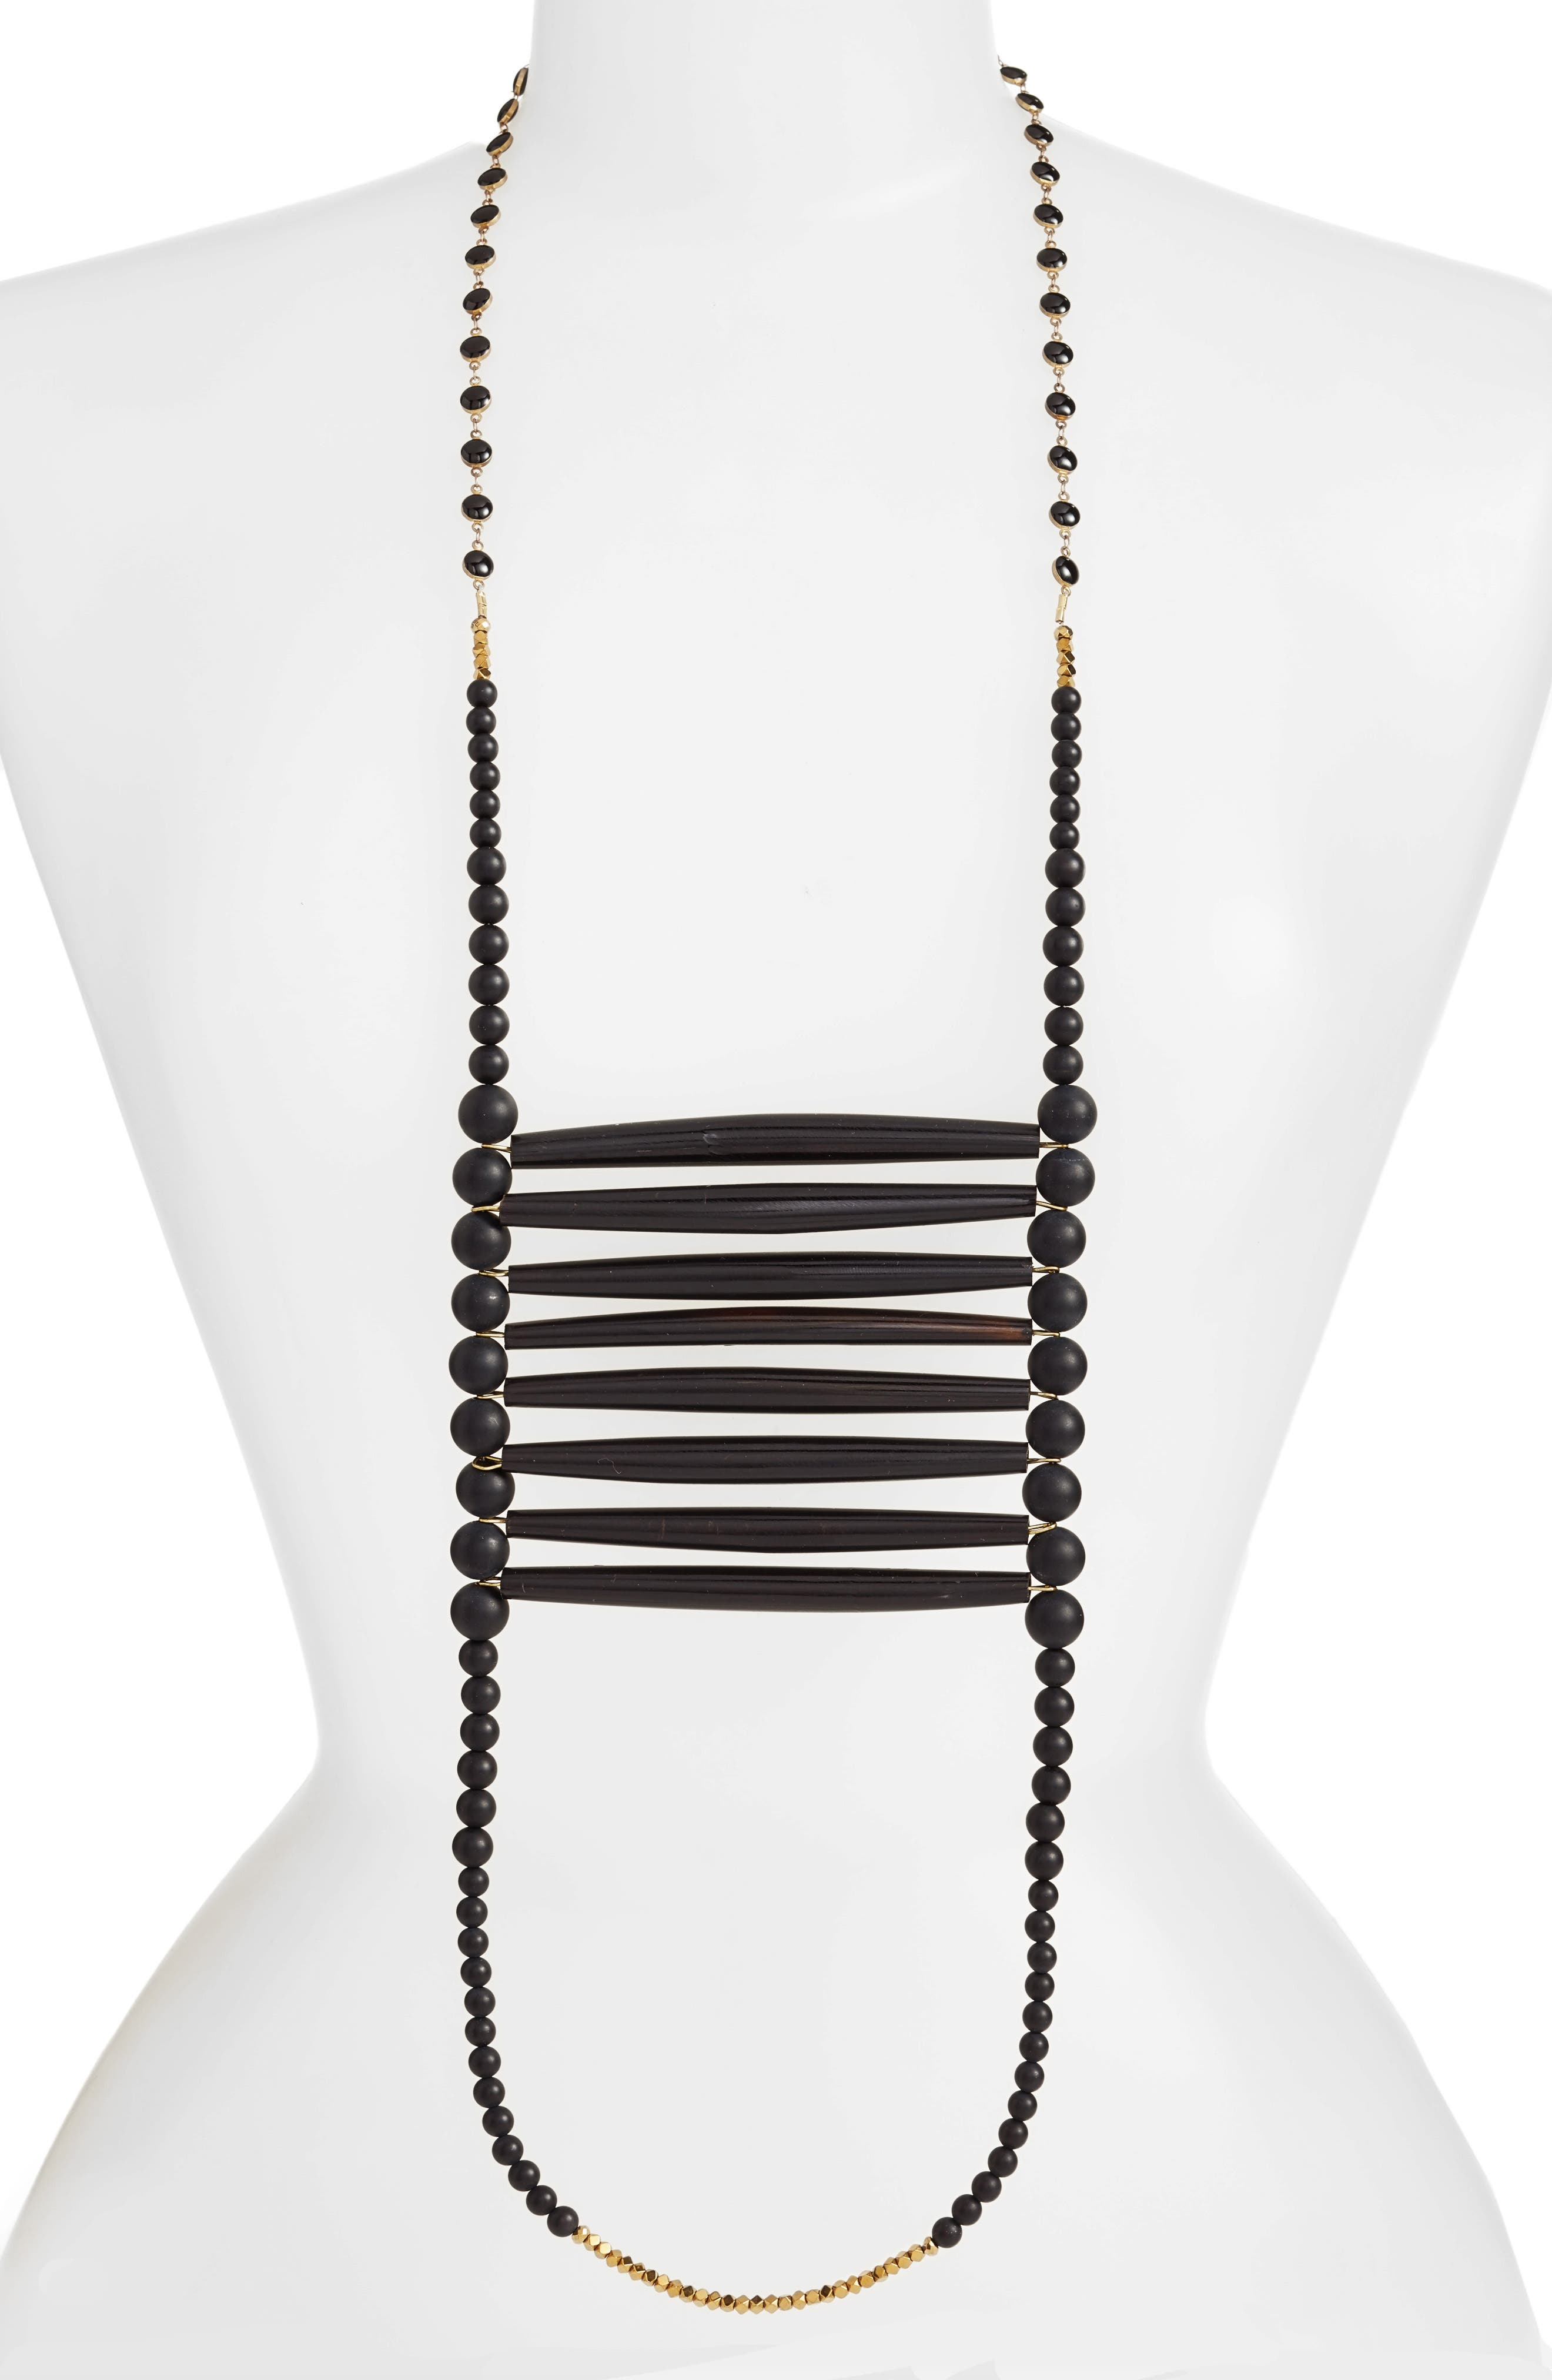 Into the Black Extra Long Beaded Necklace,                             Main thumbnail 1, color,